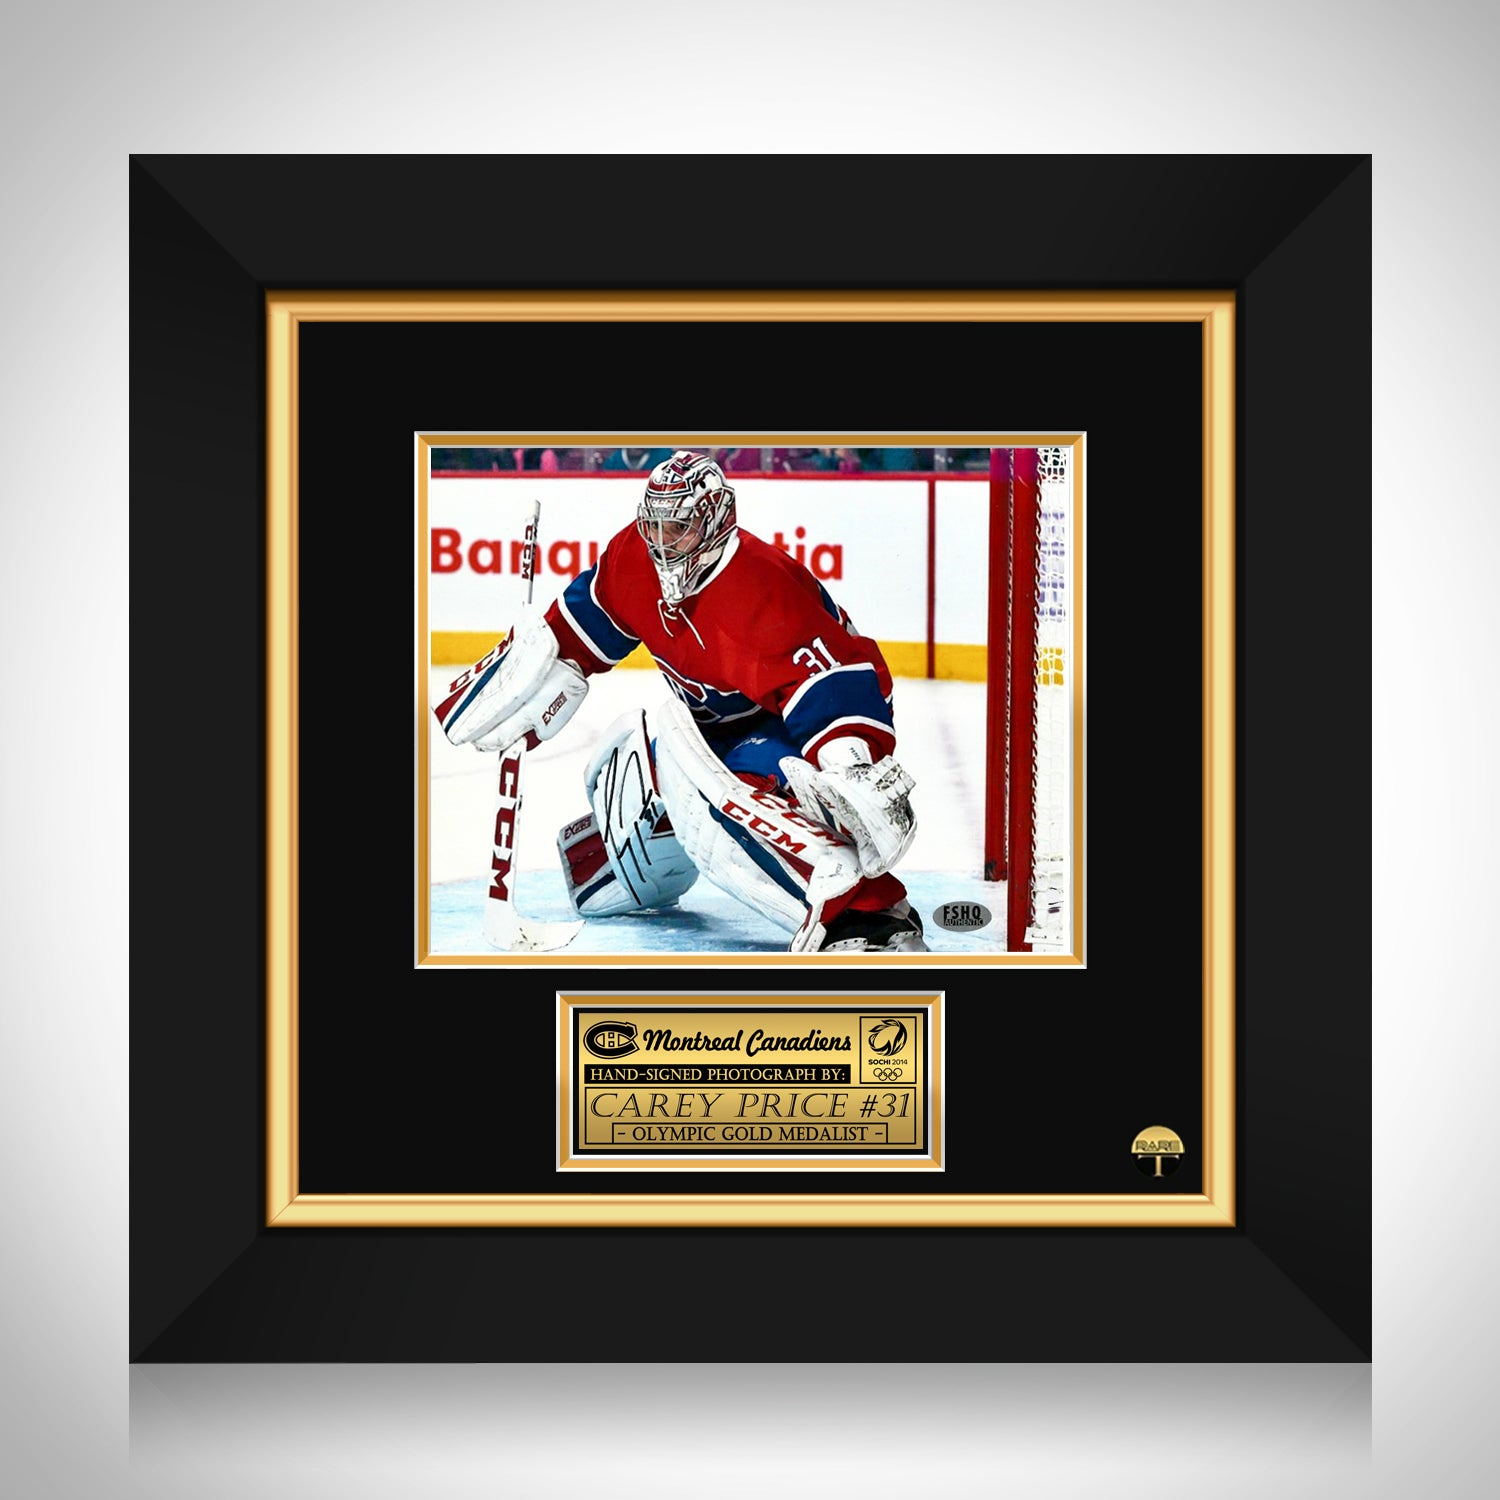 super popular 1d313 d82a2 Carey Price- Hand-Signed Montreal Canadians Photo by Carey Price